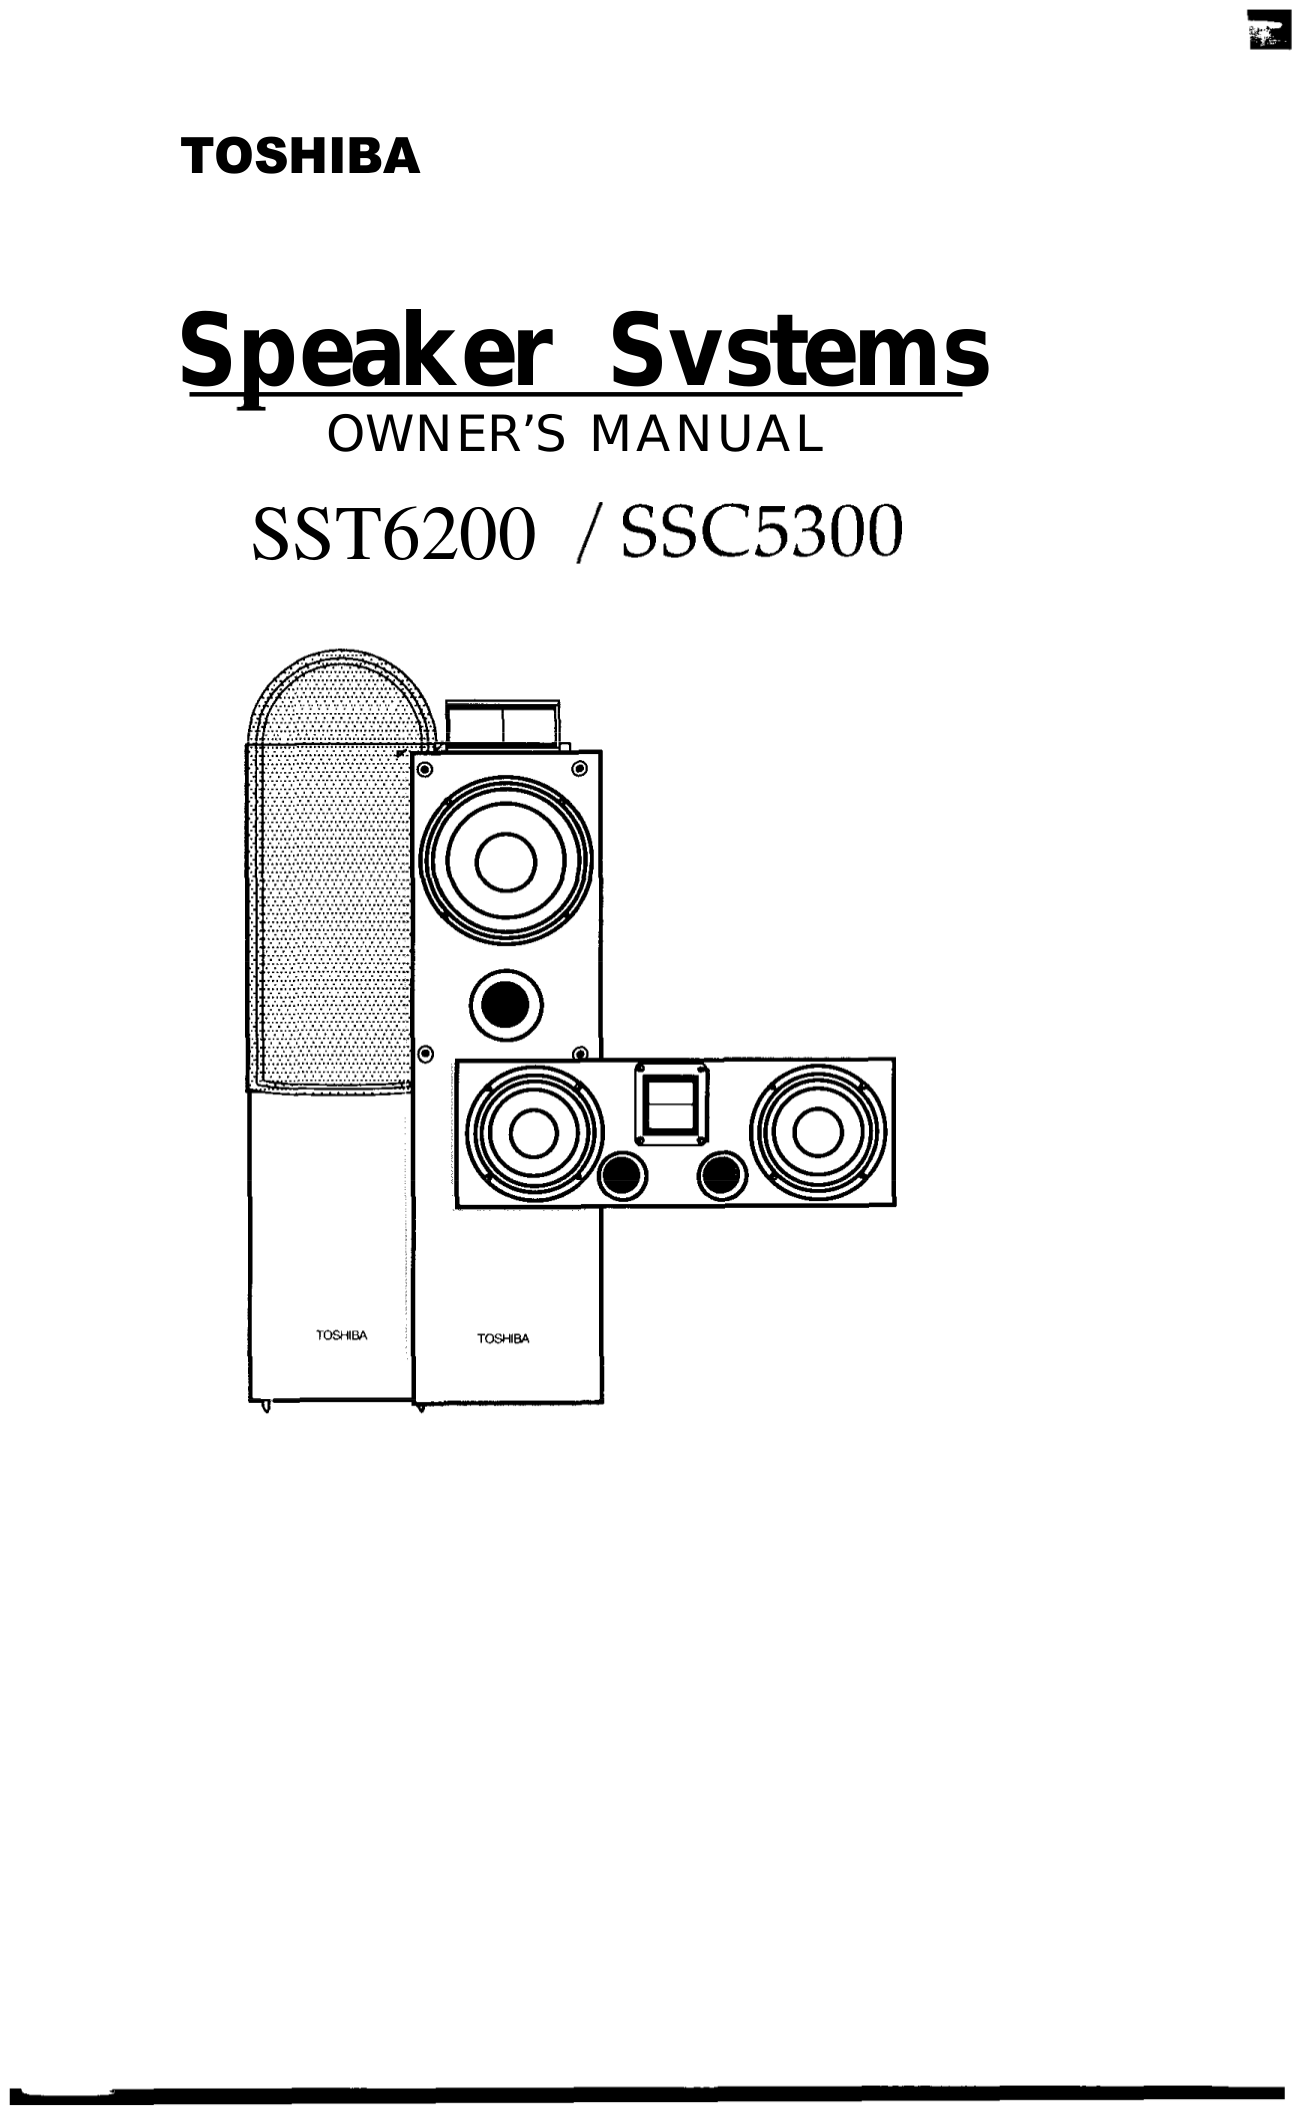 pdf for Toshiba Speaker System SST6200 manual